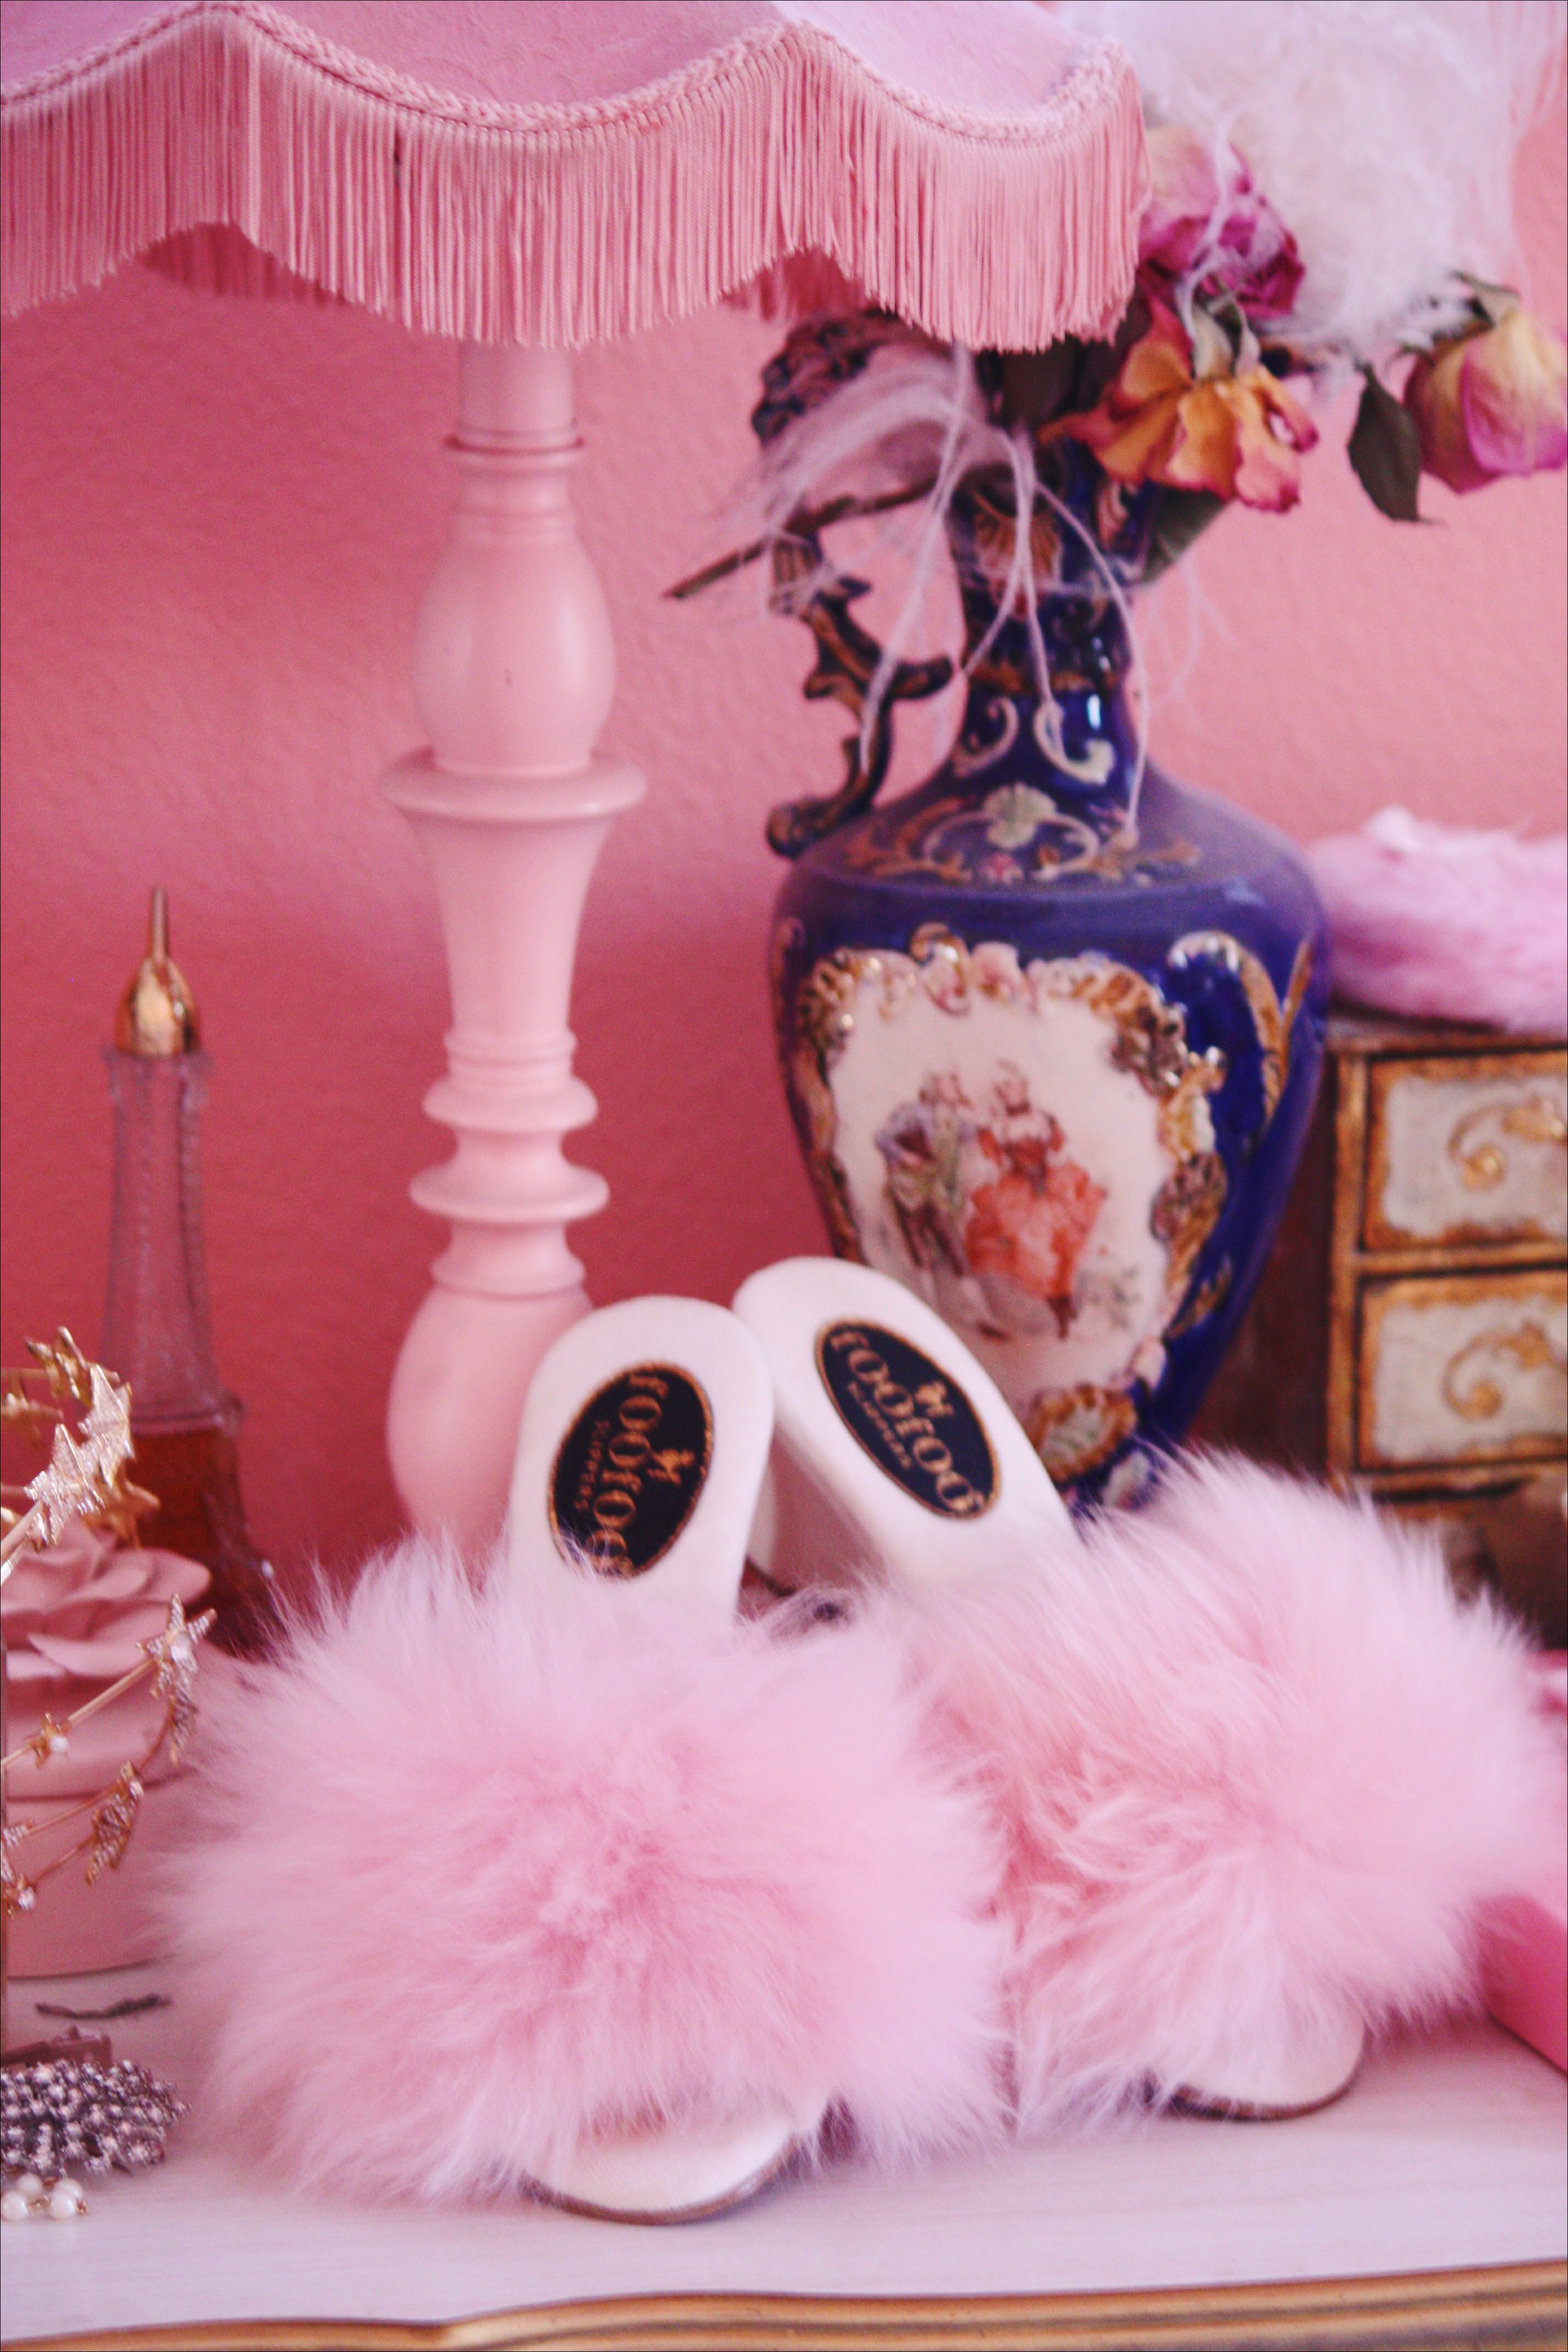 A beautiful collaboration between fOOfOO Slippers & Tara and Ashlyn of the Pink Collar Life. The fOOfOOs shown are fluffy-heeled slippers with pink sheepskin upper and base. Every nuance of the shape and contours of the woman's foot must be taken into acc